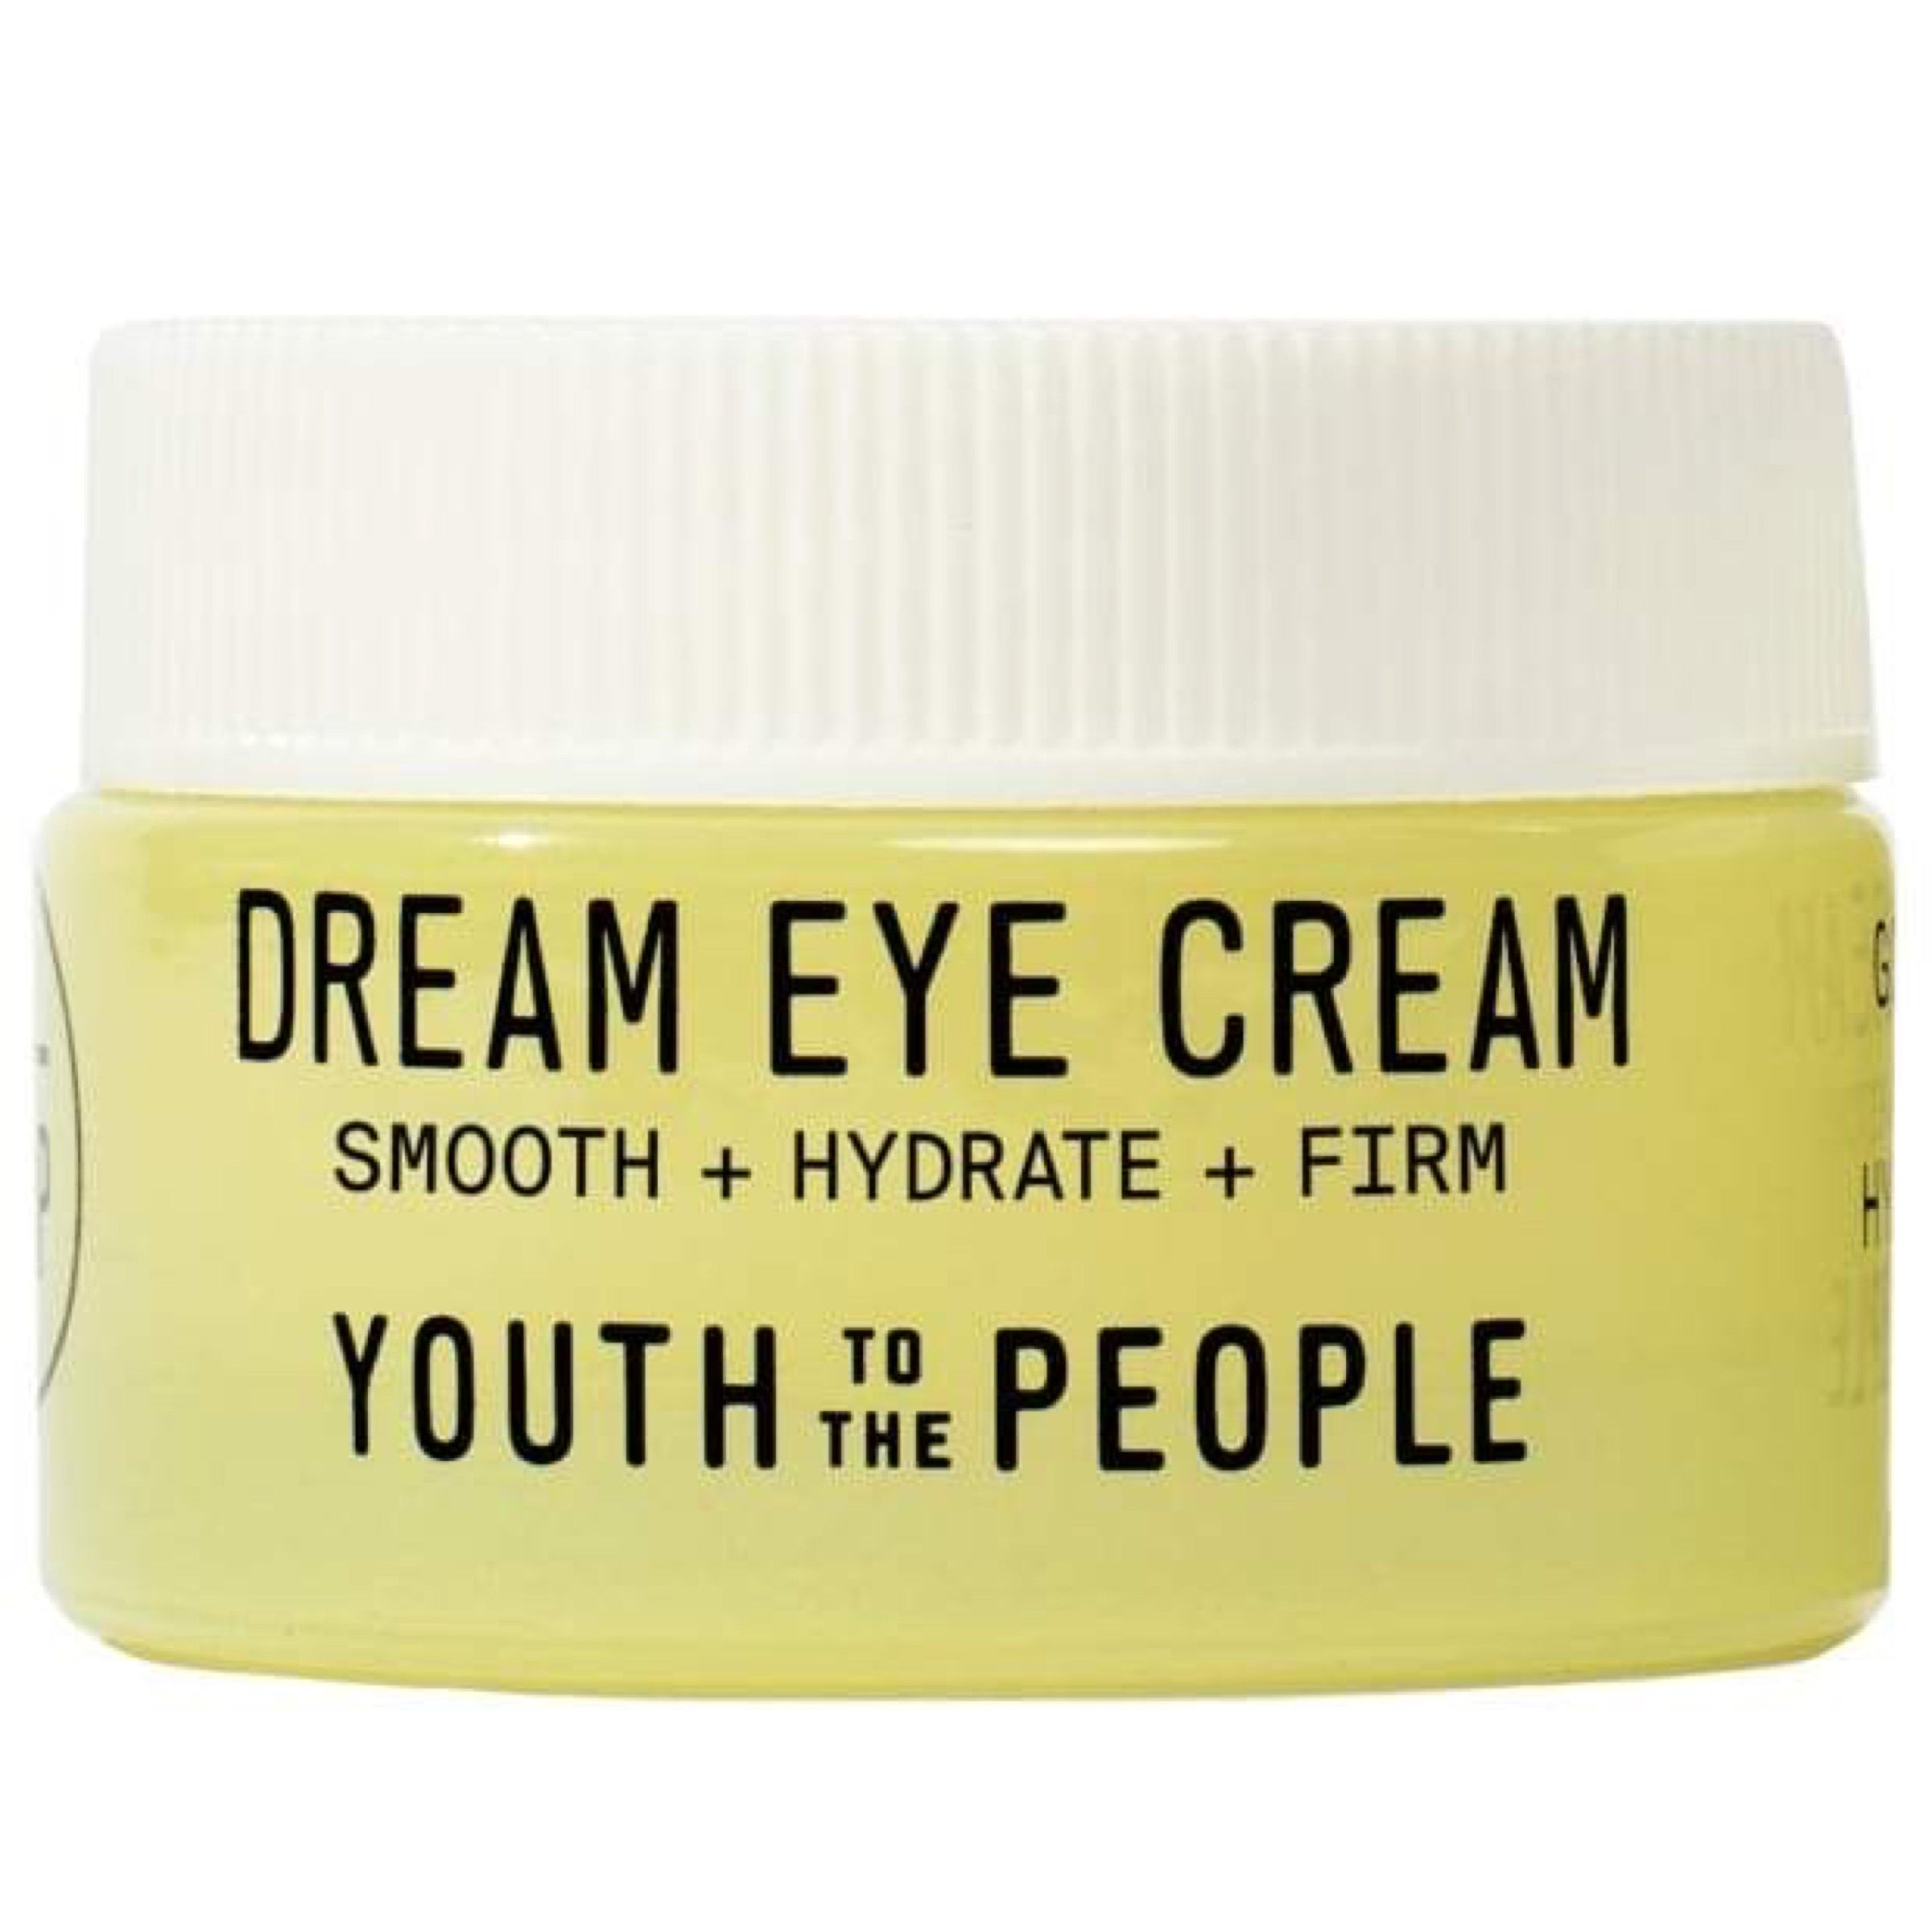 YOUTH TO THE PEOPLE Dream Eye Cream with Goji Stem Cell and Ceramides, 15ml, Eye Cream, London Loves Beauty